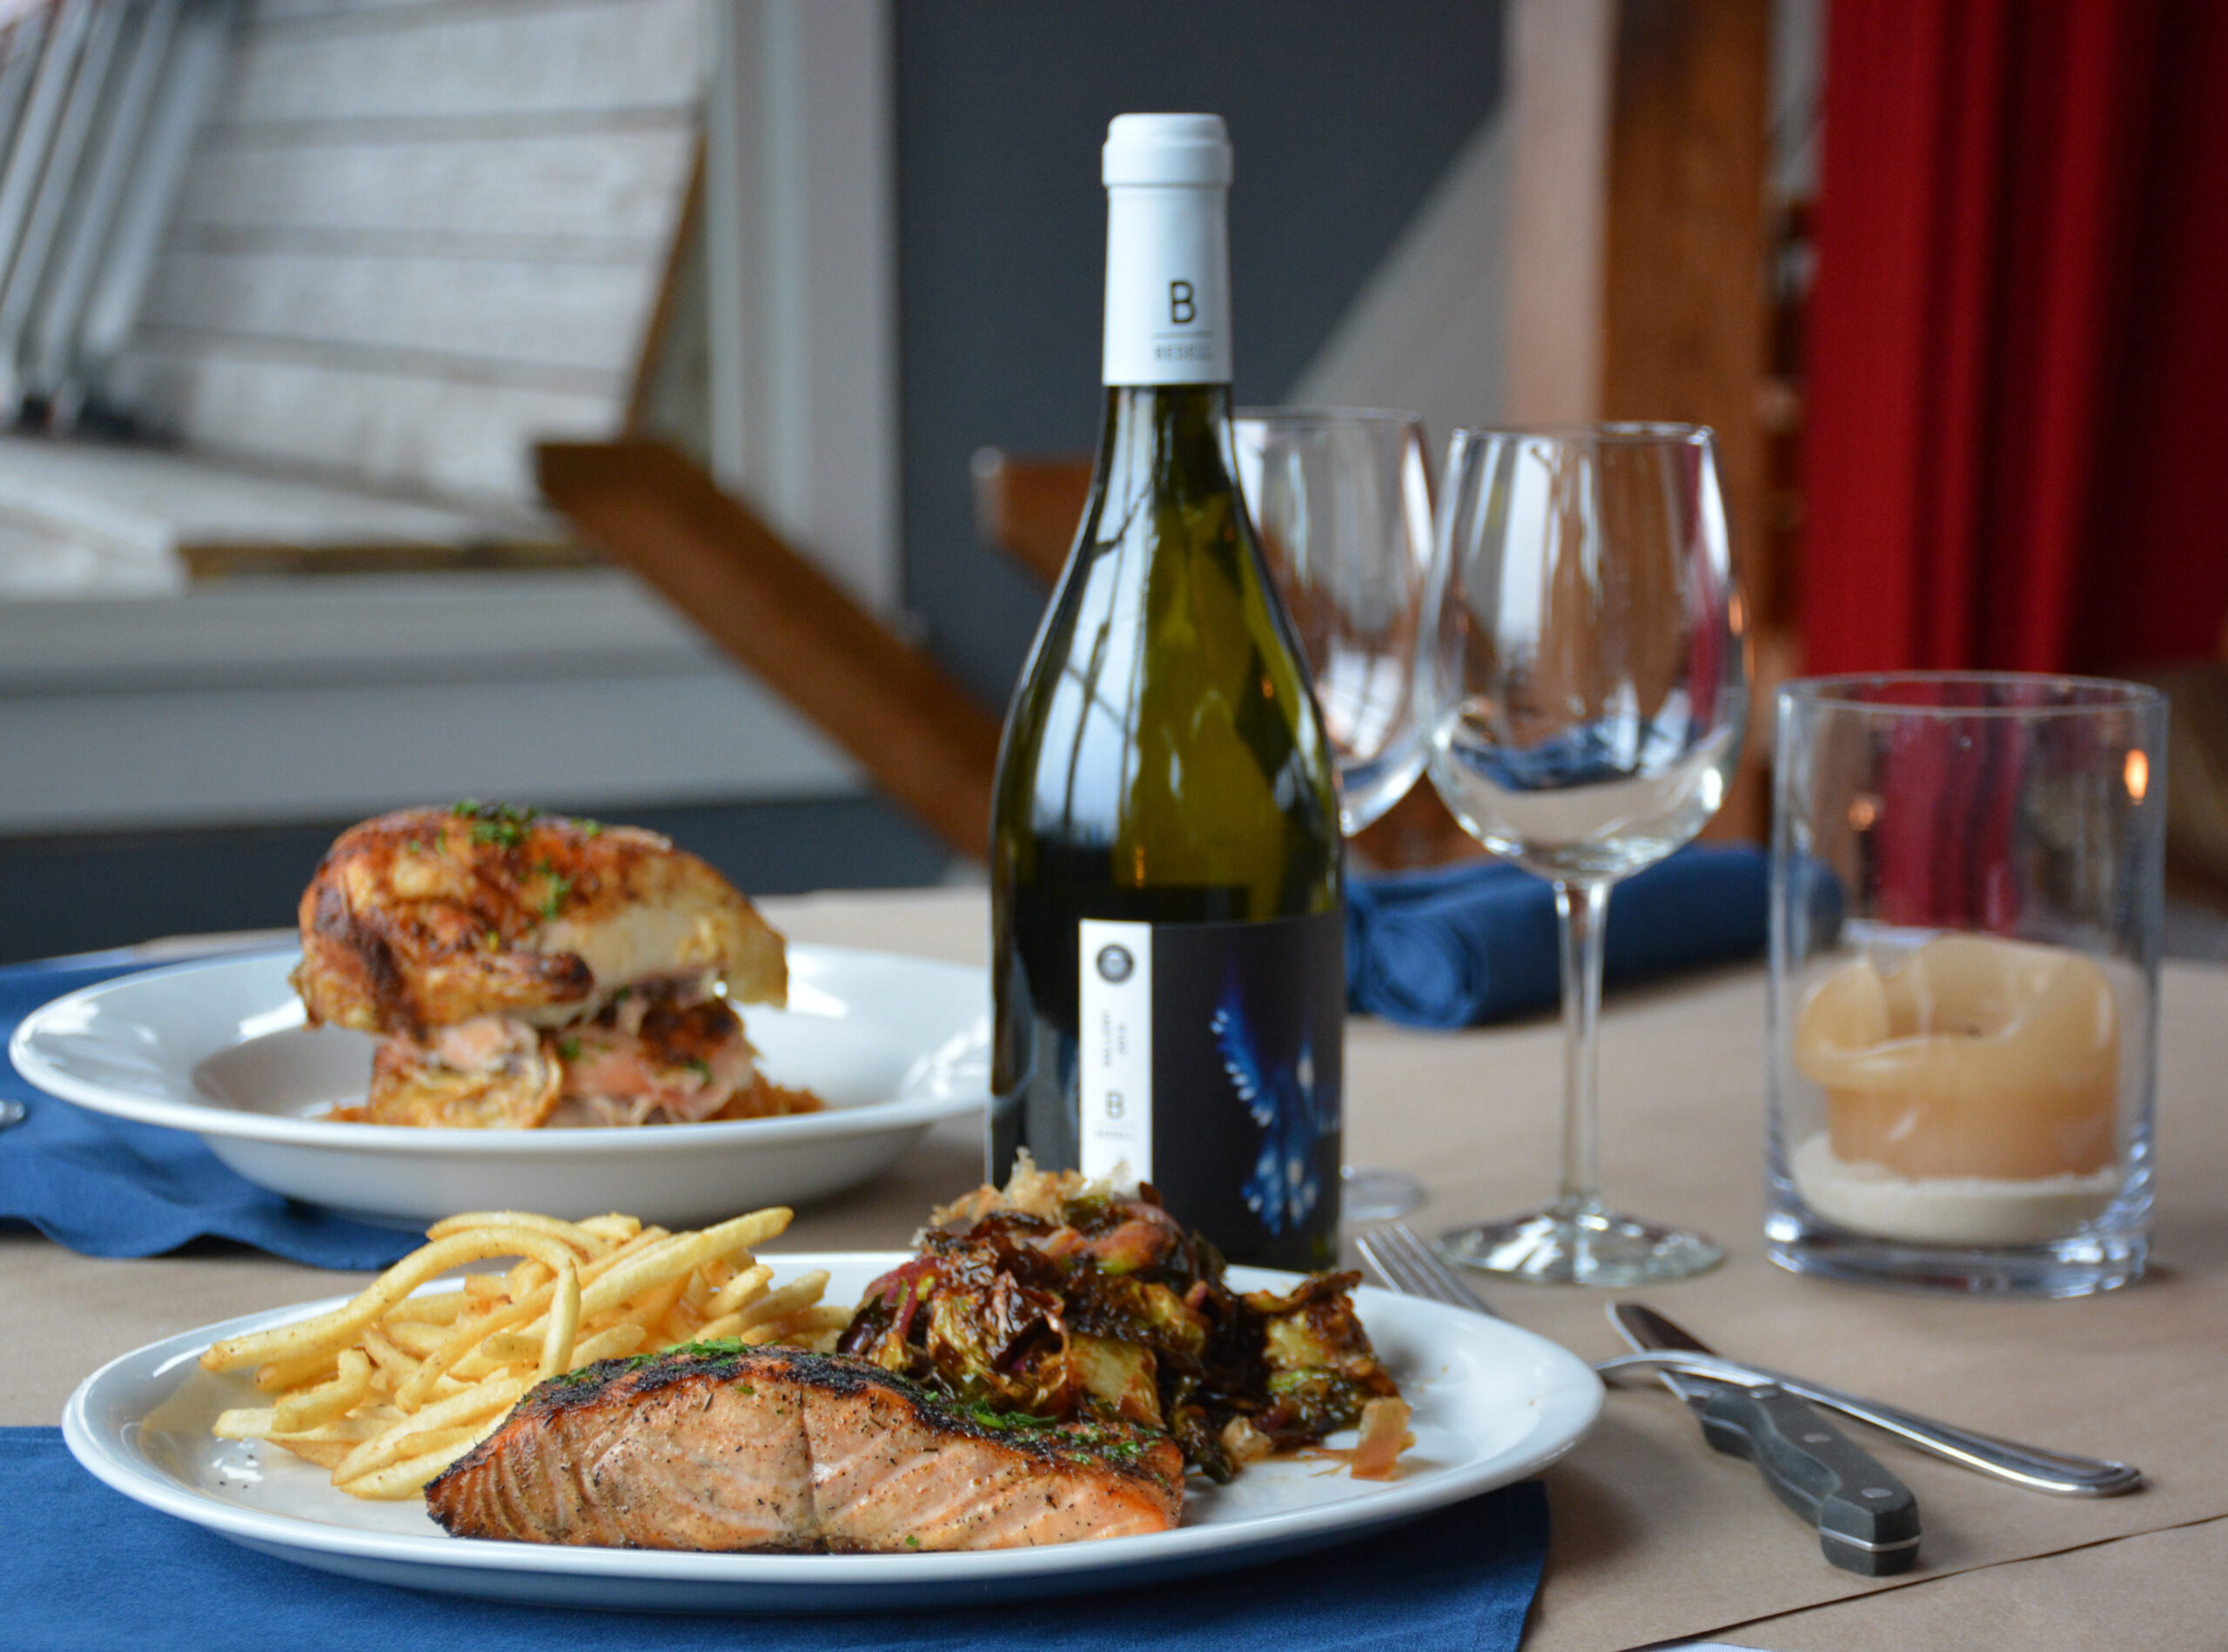 Wine Down Wednesday at Cowfish. One free bottle of wine with purchase of two entrees.